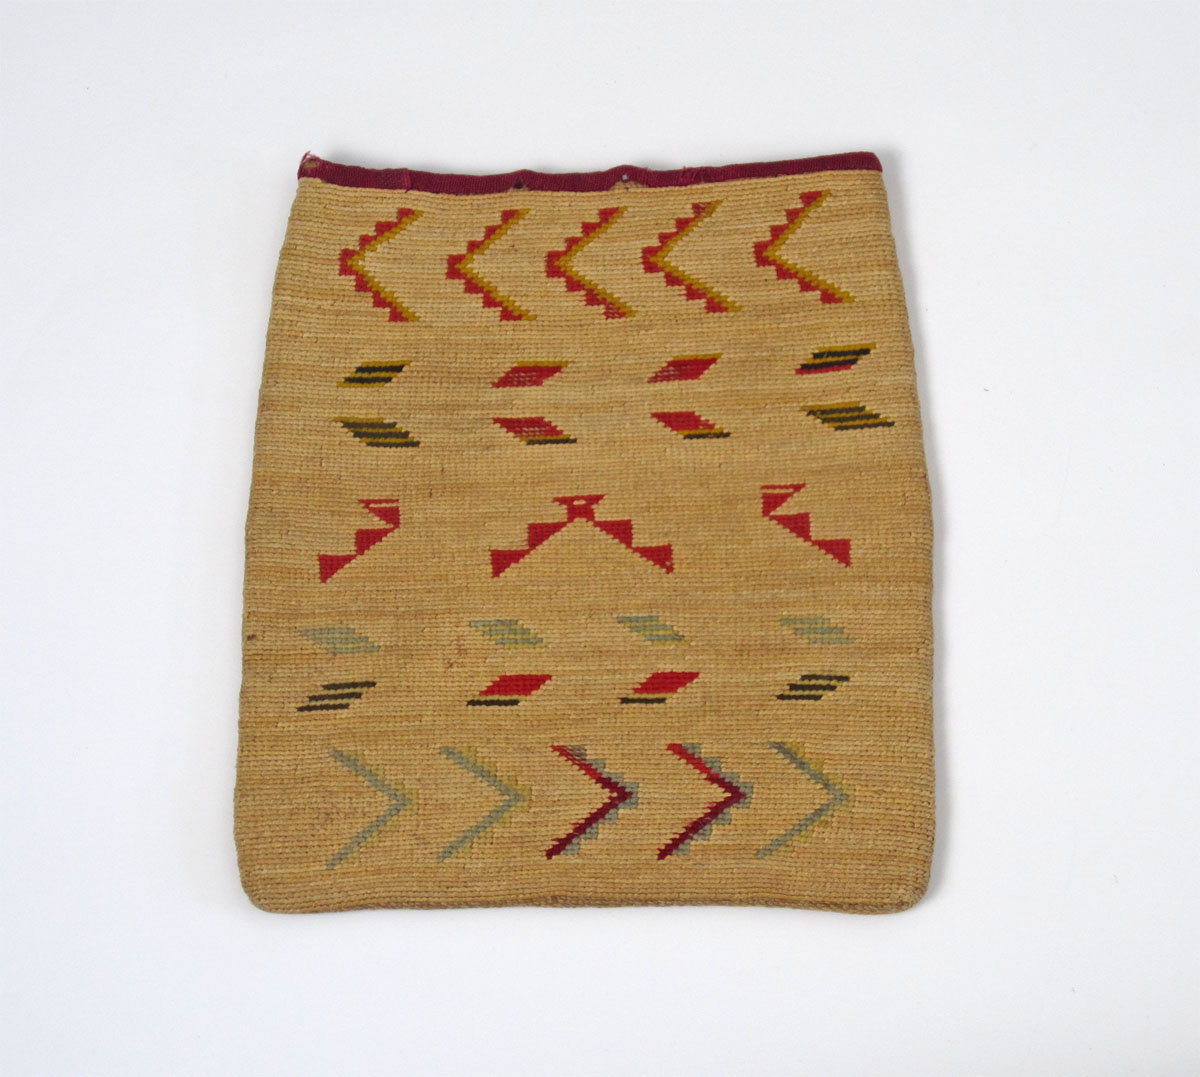 http://www.marcyburns.com/baskets-collection/nez-perces-cornhusk-bag-3